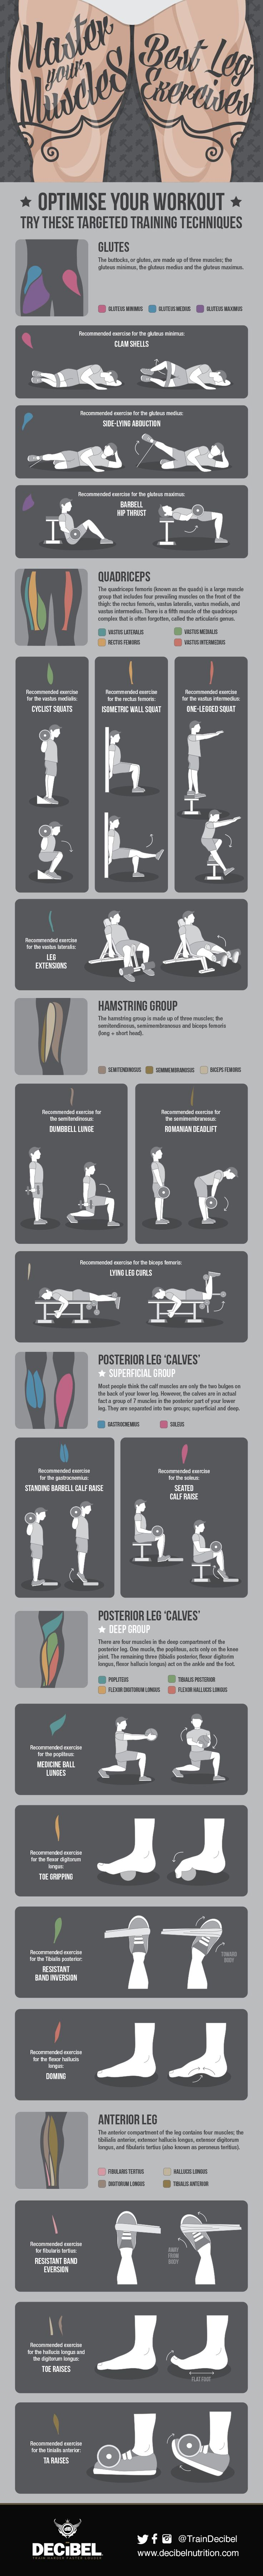 Master Your Muscles: Best Leg Exercises	http://www.decibelnutrition.com/unilad/master-your-muscles-best-leg-exercises